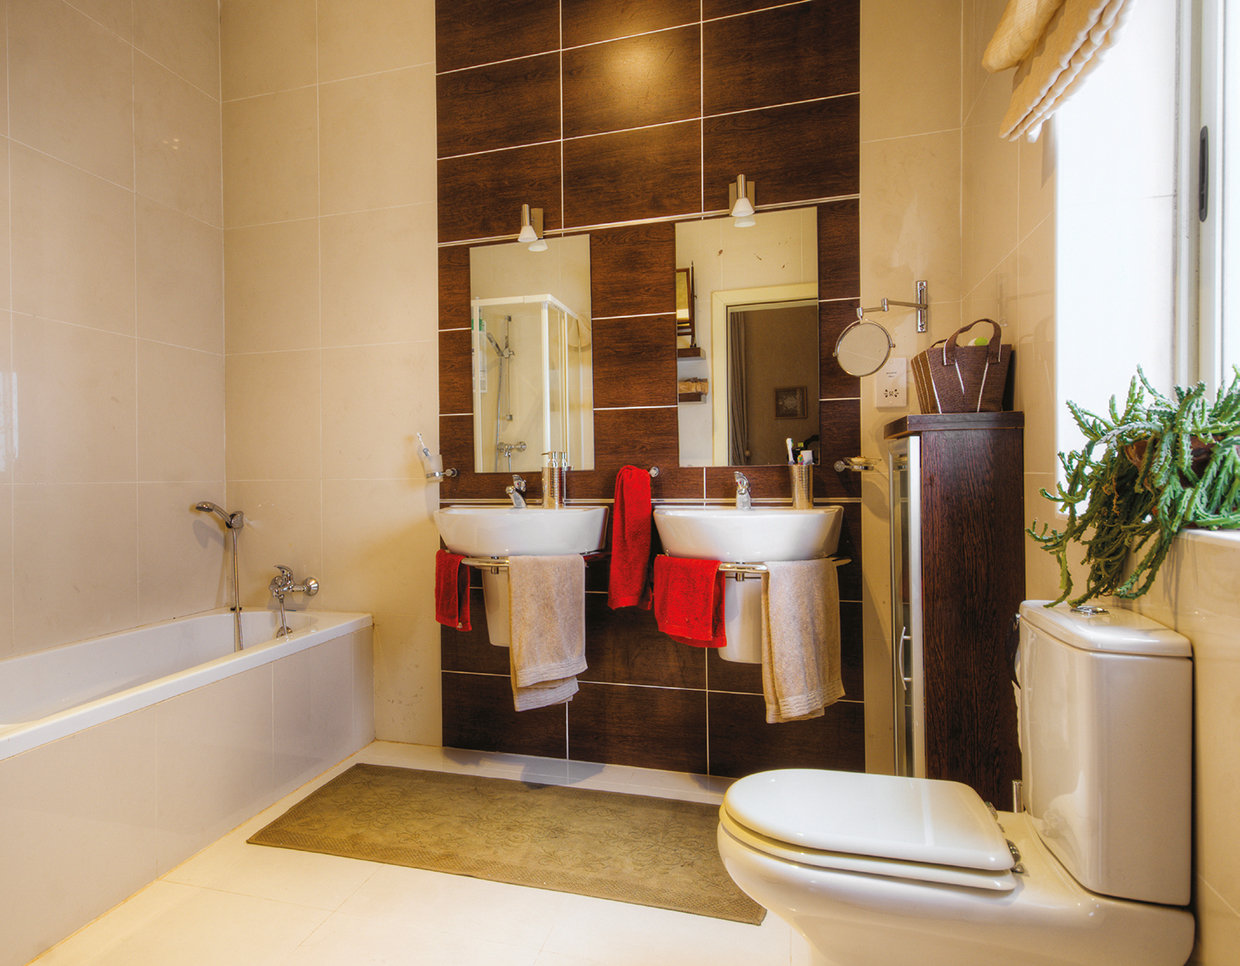 The bathroom is all-modern with Travertine marble walls and white fittings. © Alan Carville